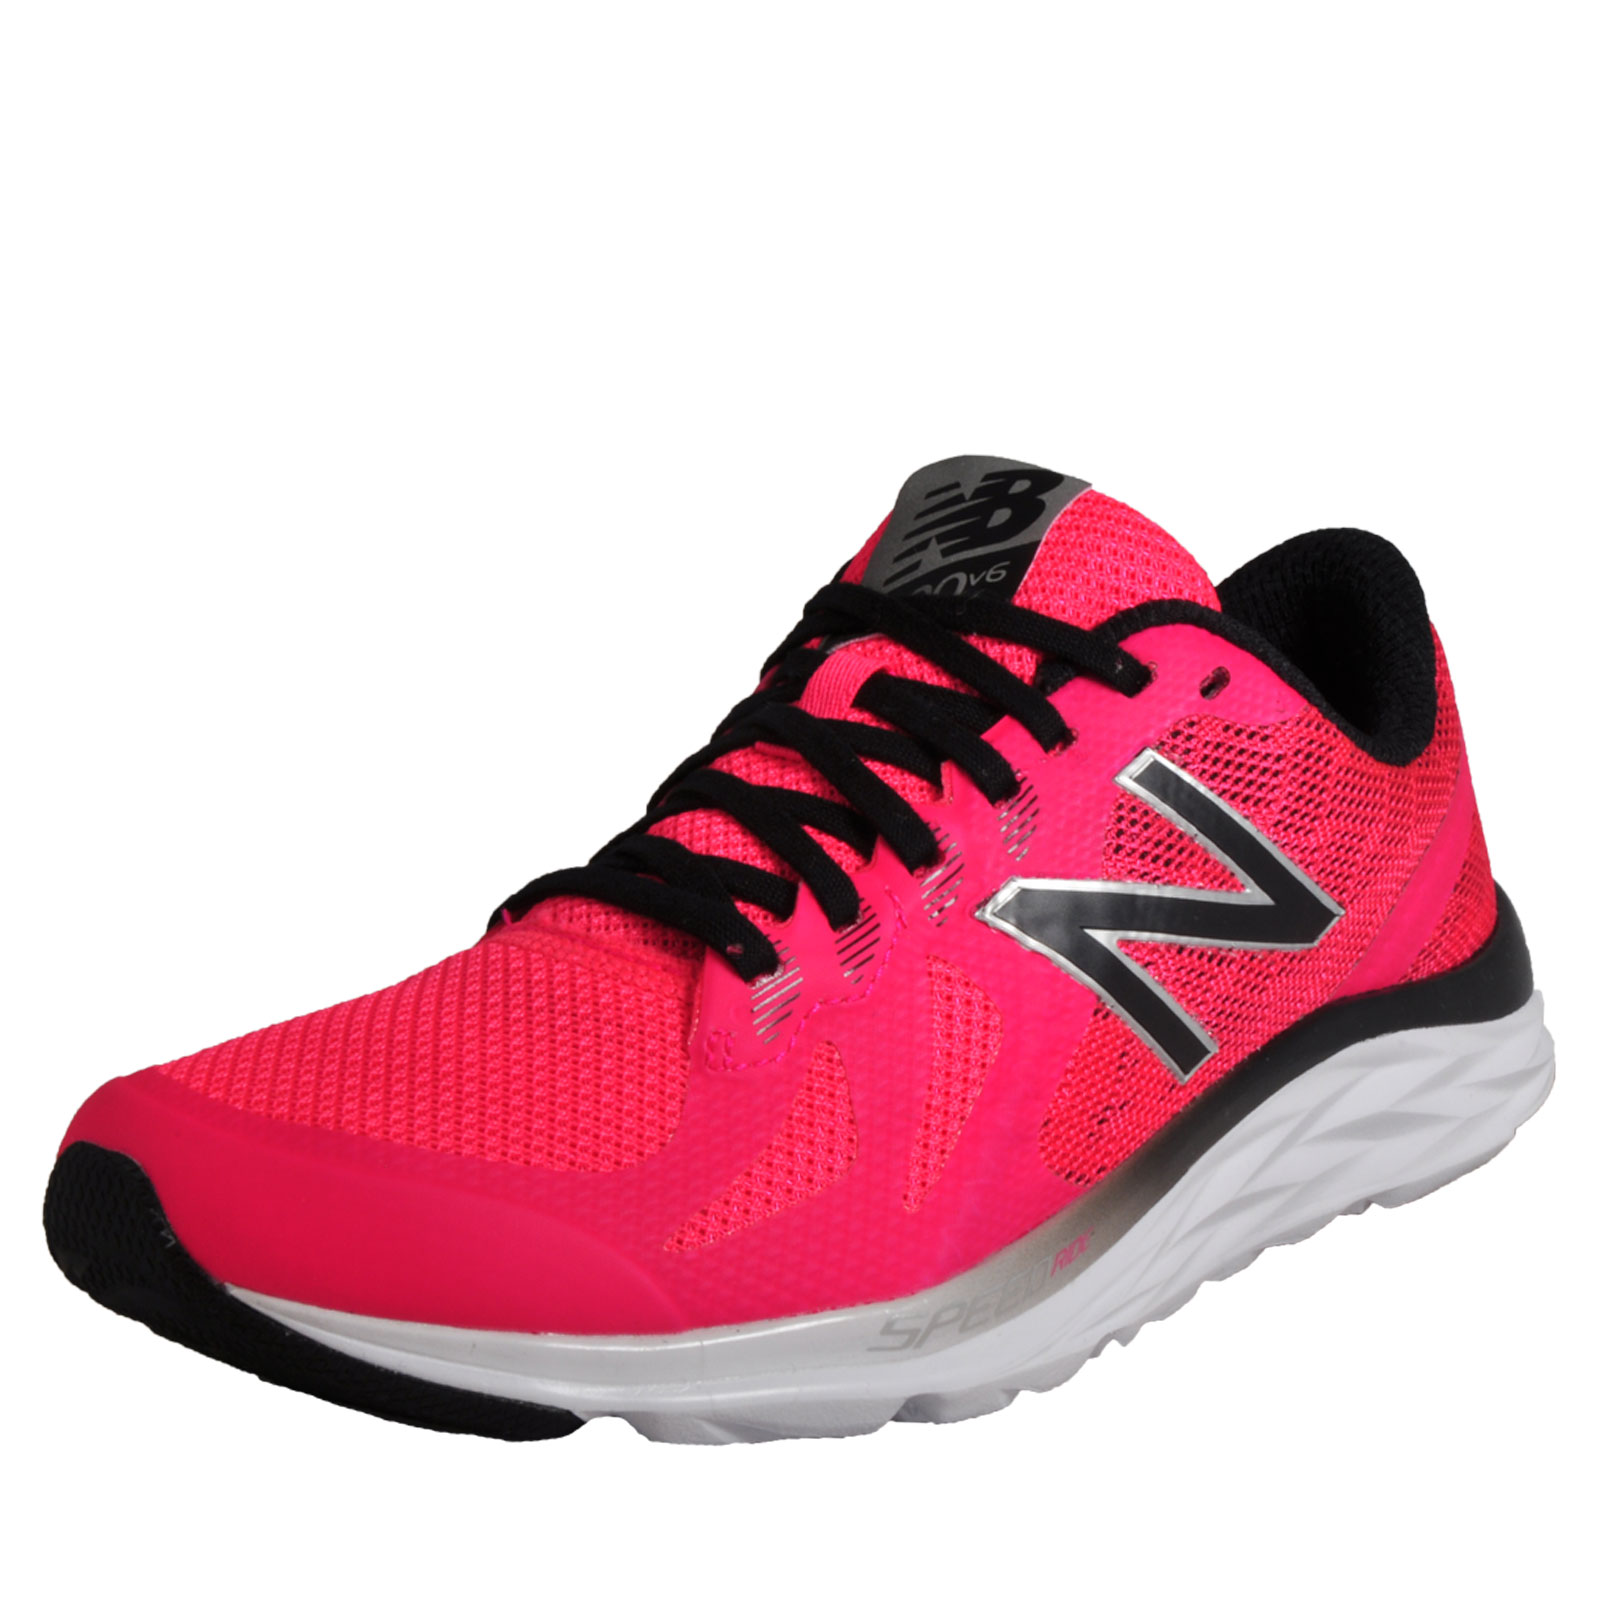 New Balance 790 Pink Running Shoes free shipping 2014 owV7tO24D